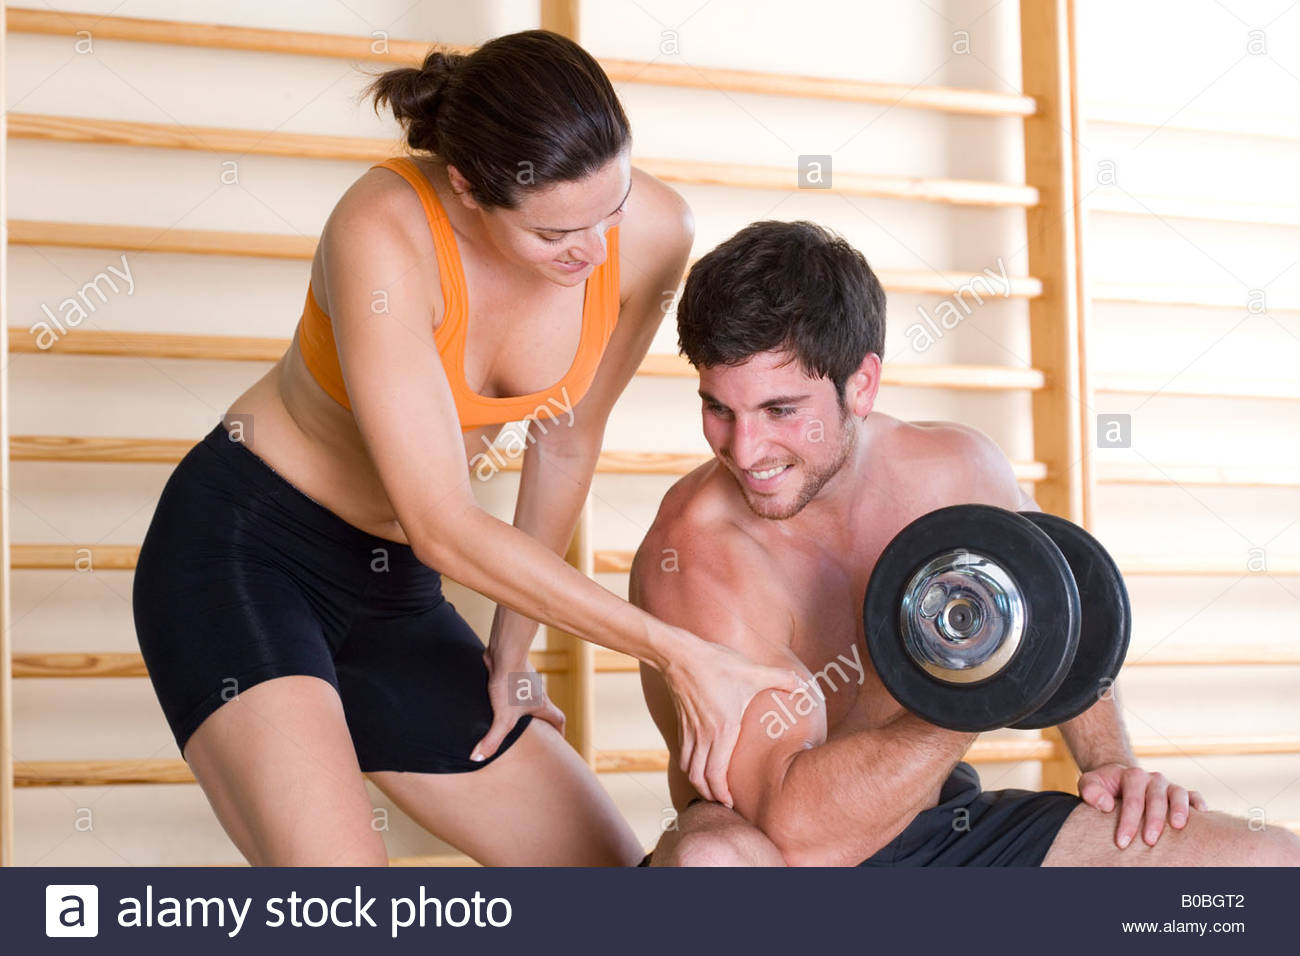 Woman feeling biceps of man using dumbbell, close-up - Stock Image